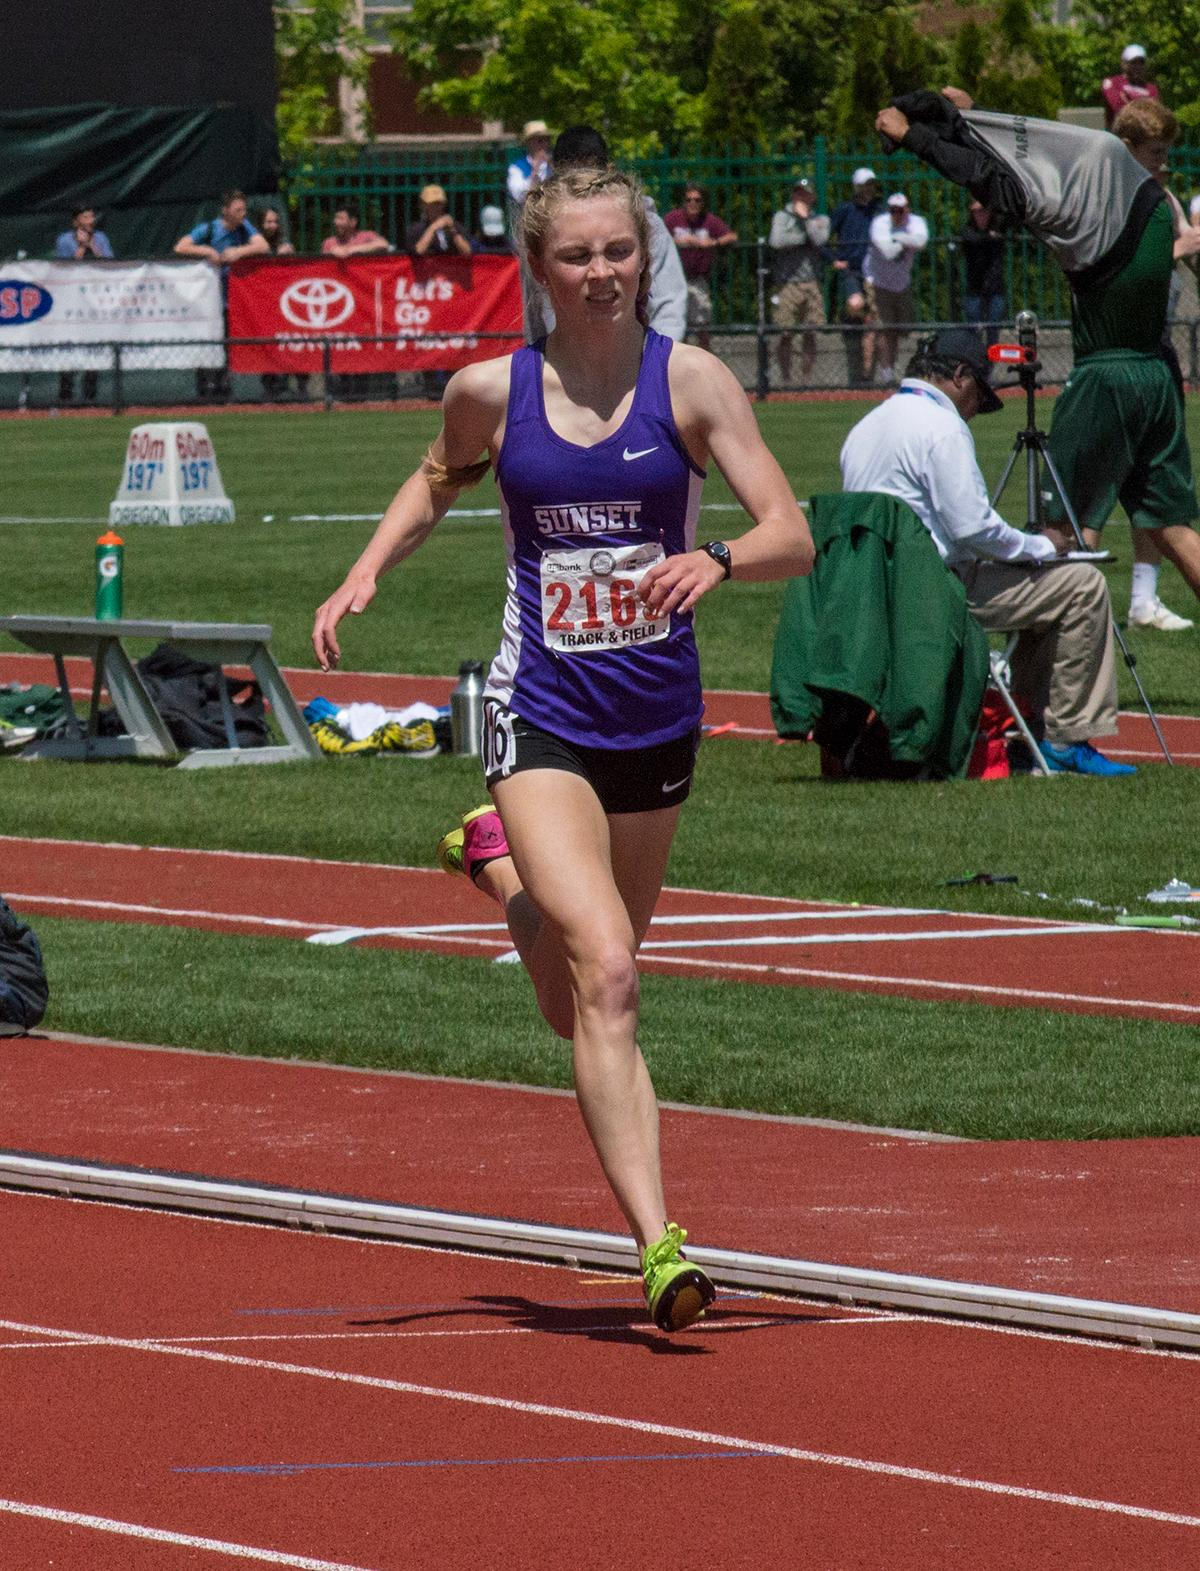 Kelly Makin of Sunset High School wins the 6A Girls 1500 Meter race with a time of 4:33.47 at the OSAA Track and Field Championships at Hayward Field. Photo by Emily Gonzalez, Oregon News Lab.